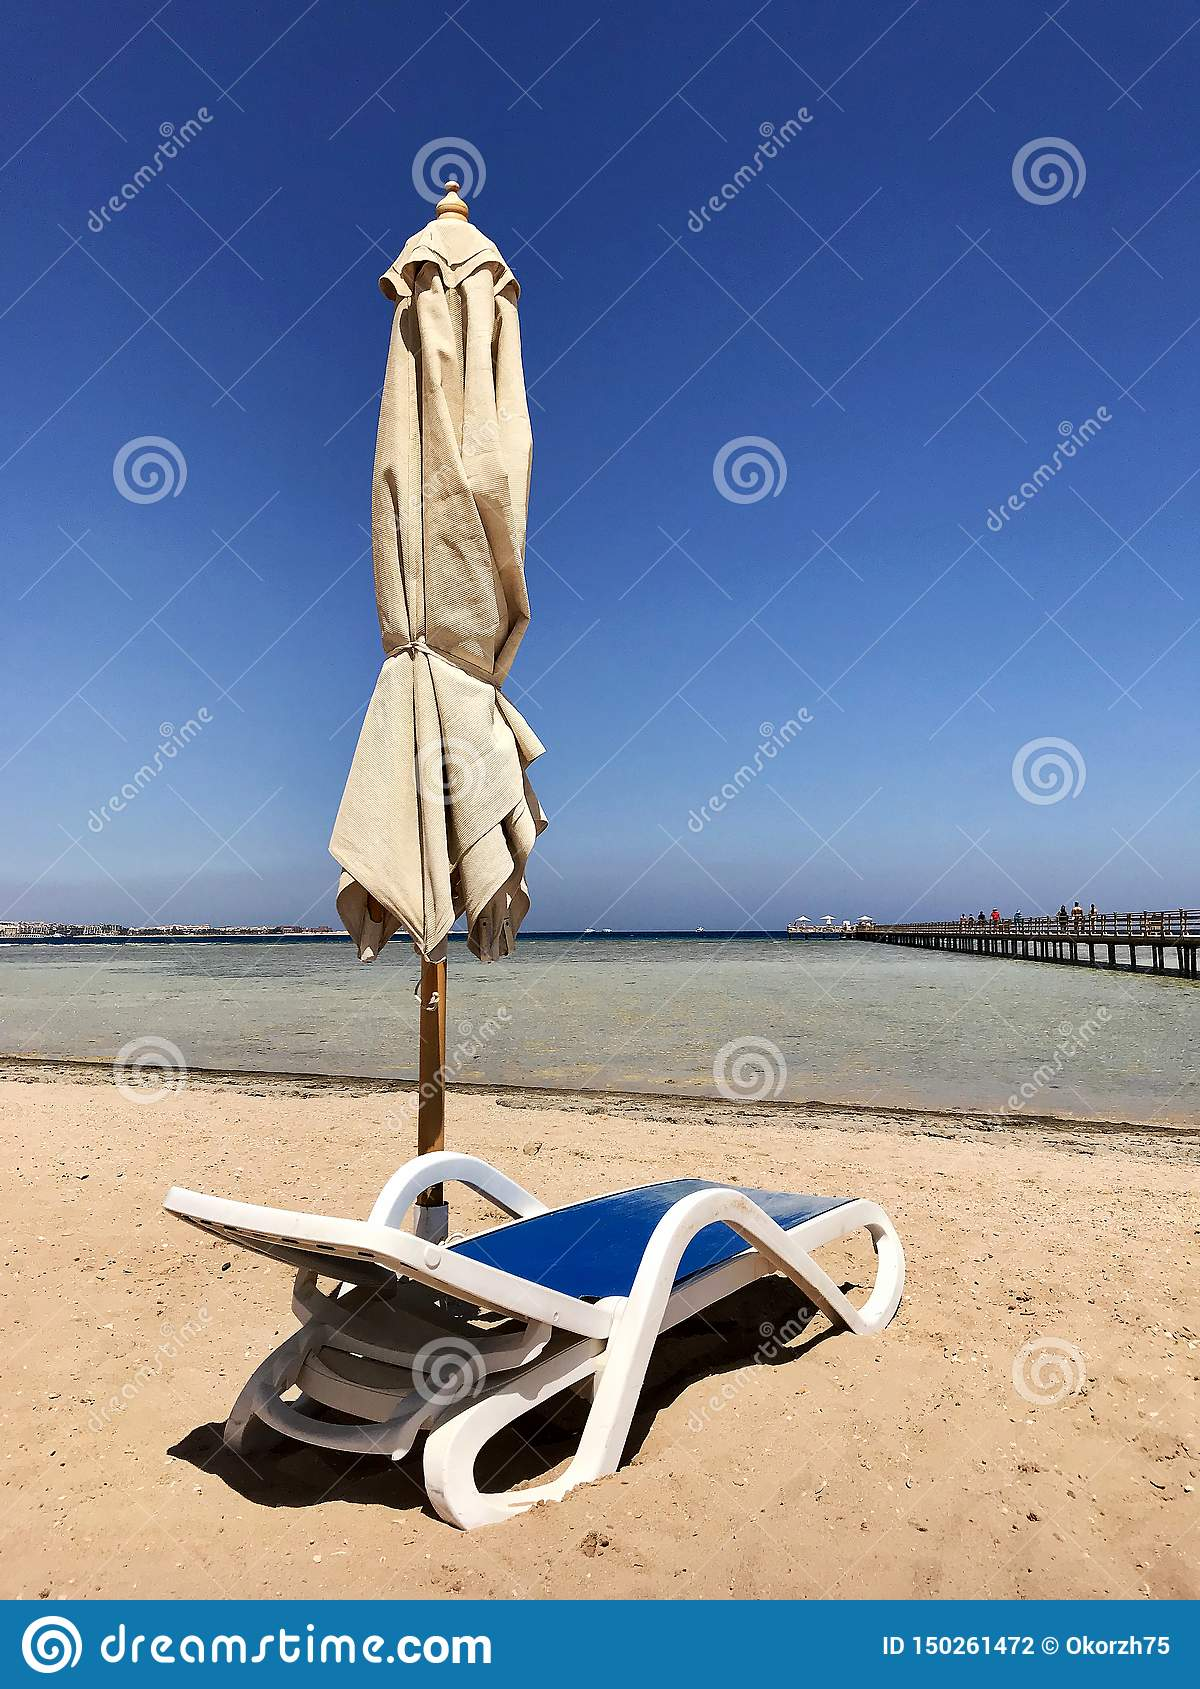 Stylish lounger in yellow sand to sun sunbed on beach in summer under open sky